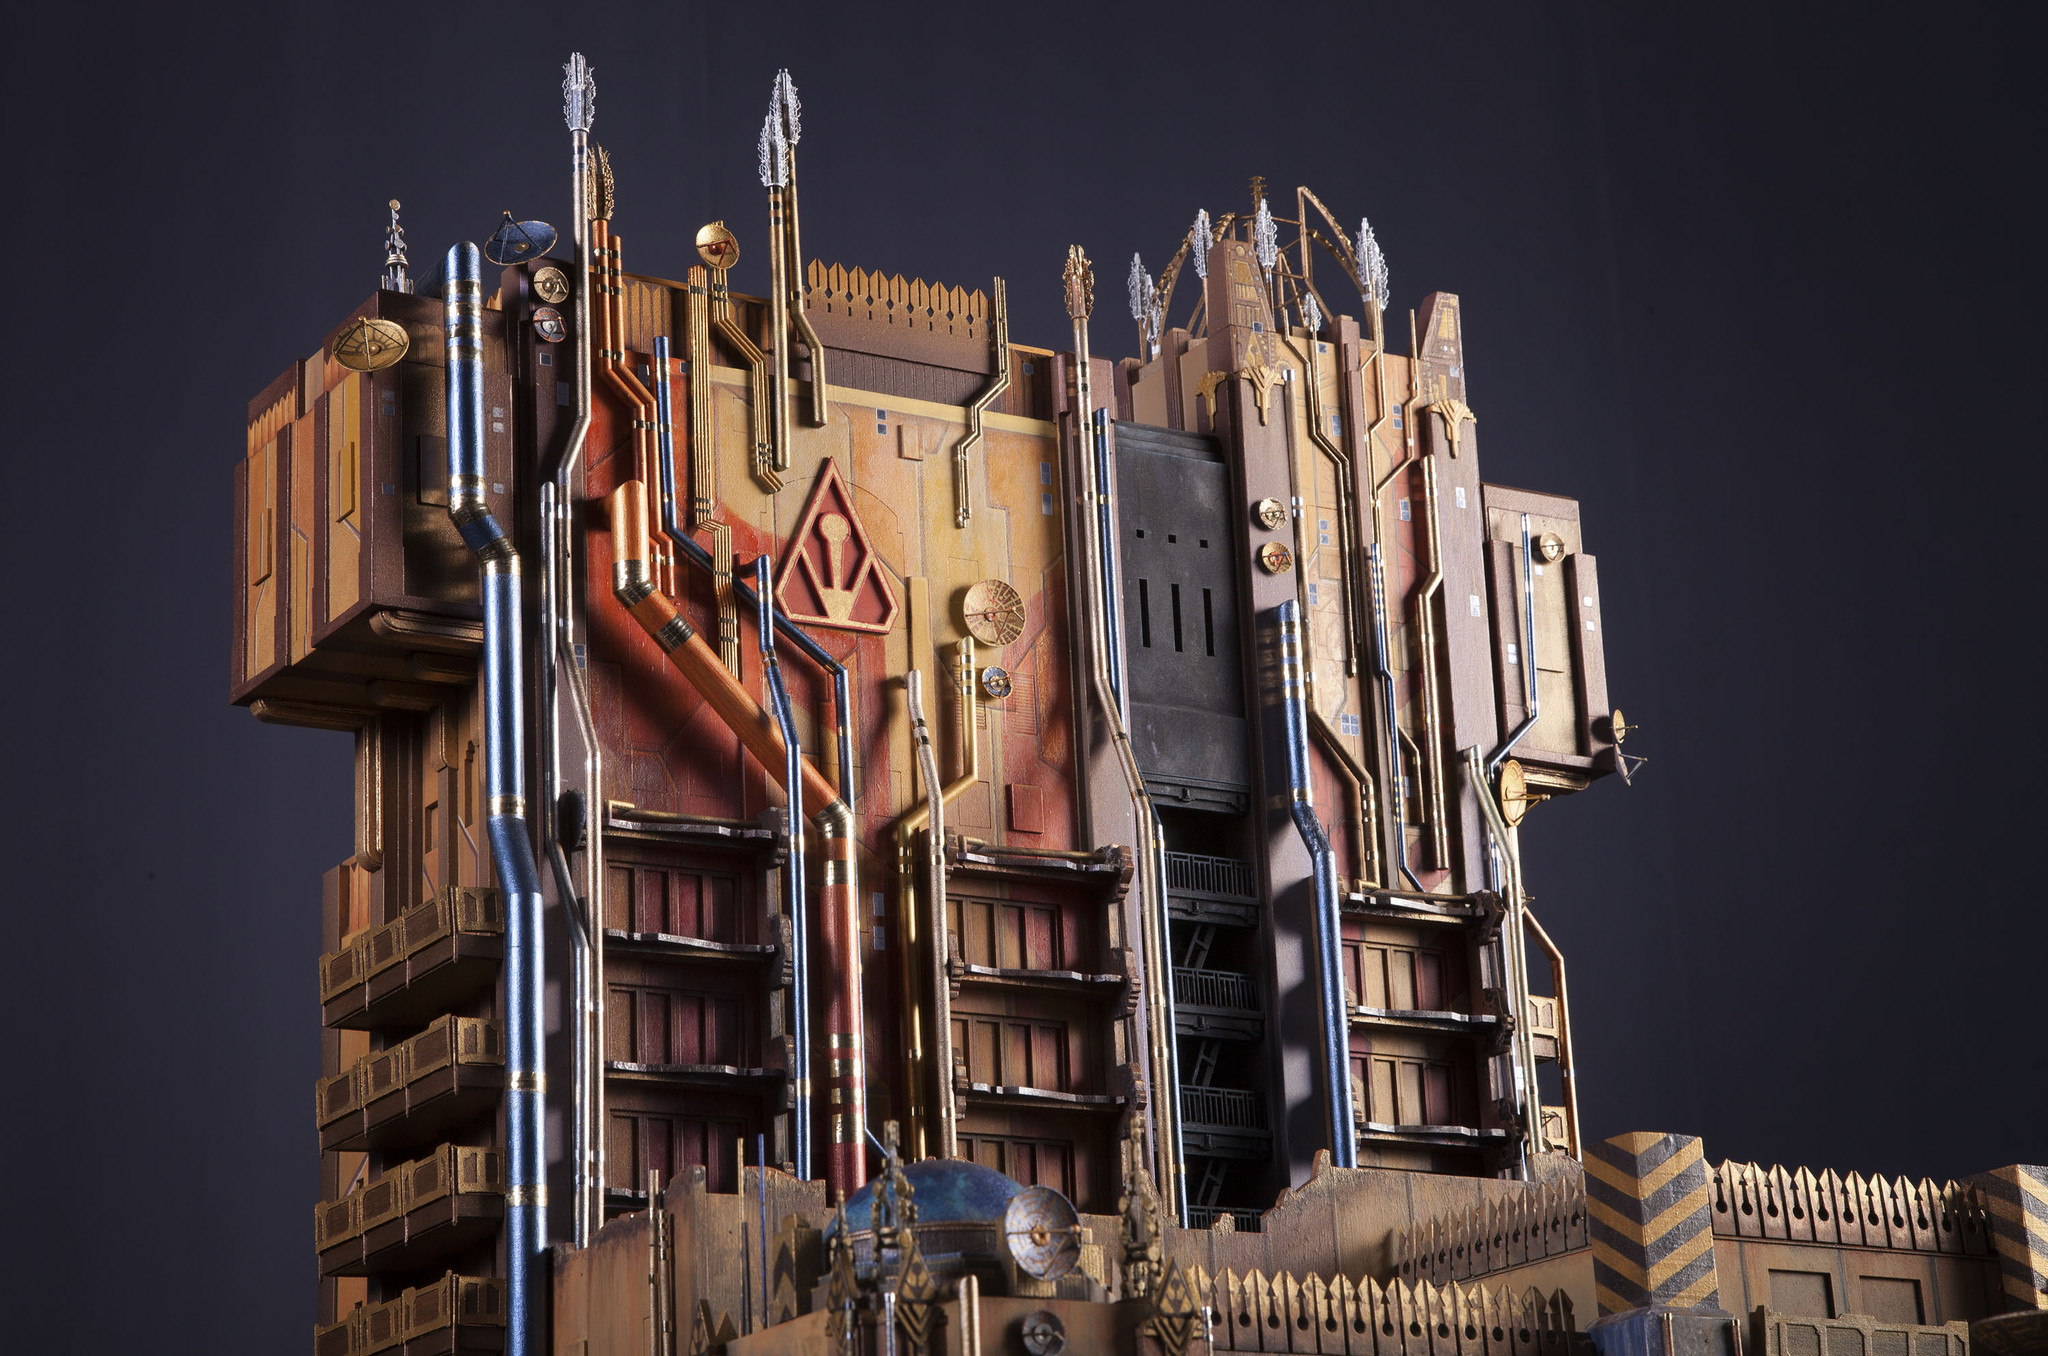 First Peek at Guardians of the Galaxy - Mission: BREAKOUT! Exterior Revealed